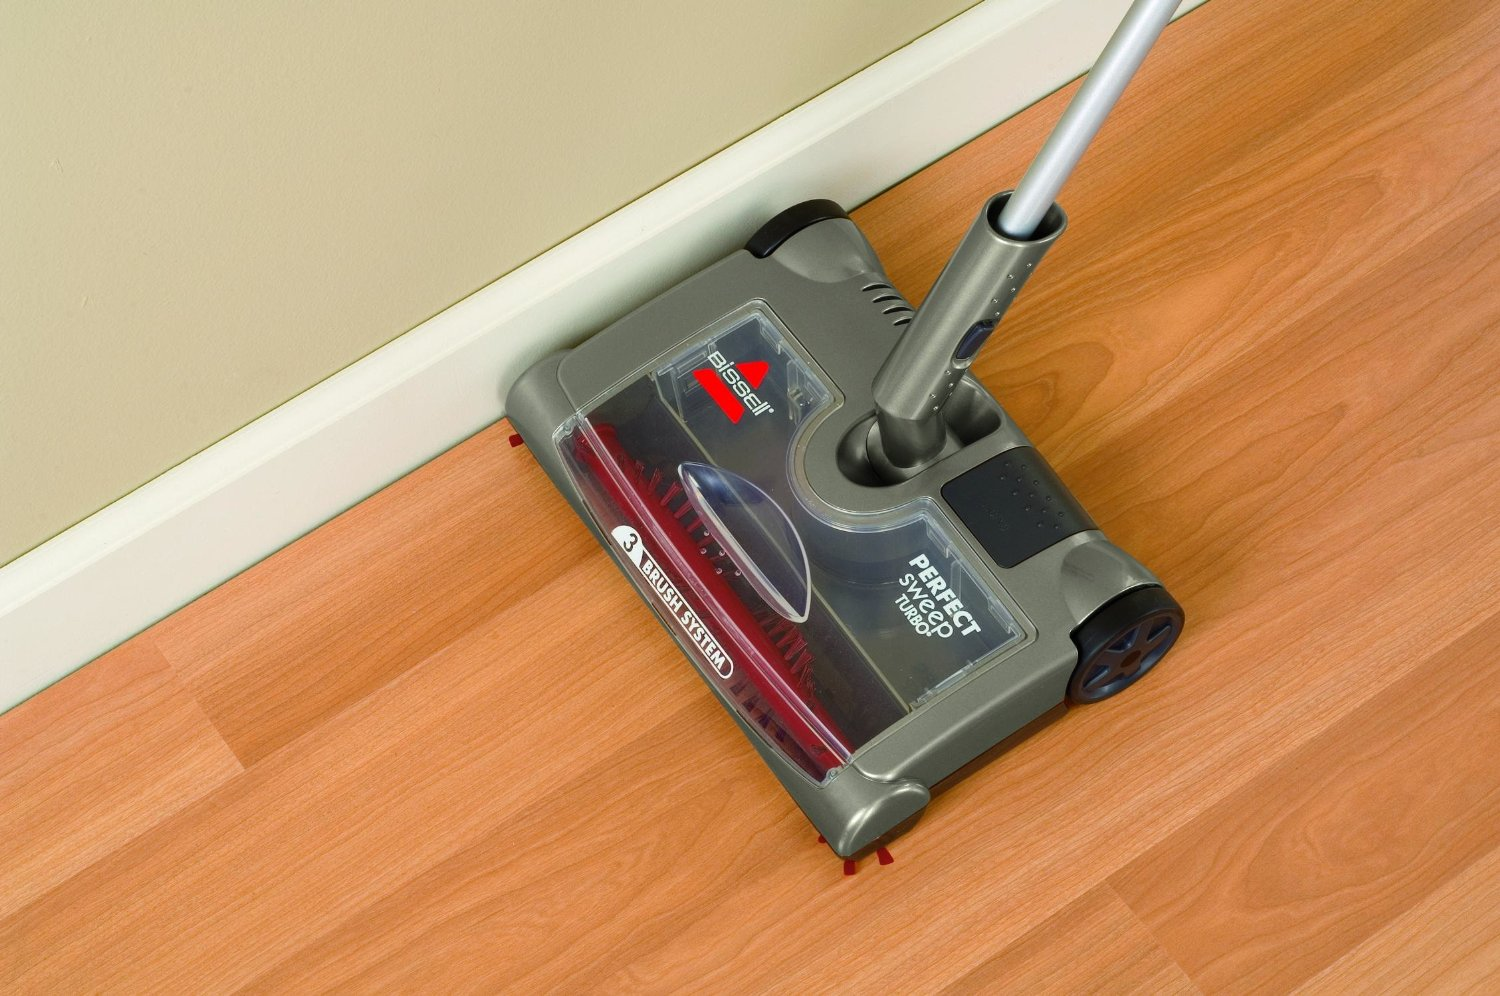 Bissell cordless floor sweeper dyson wd04